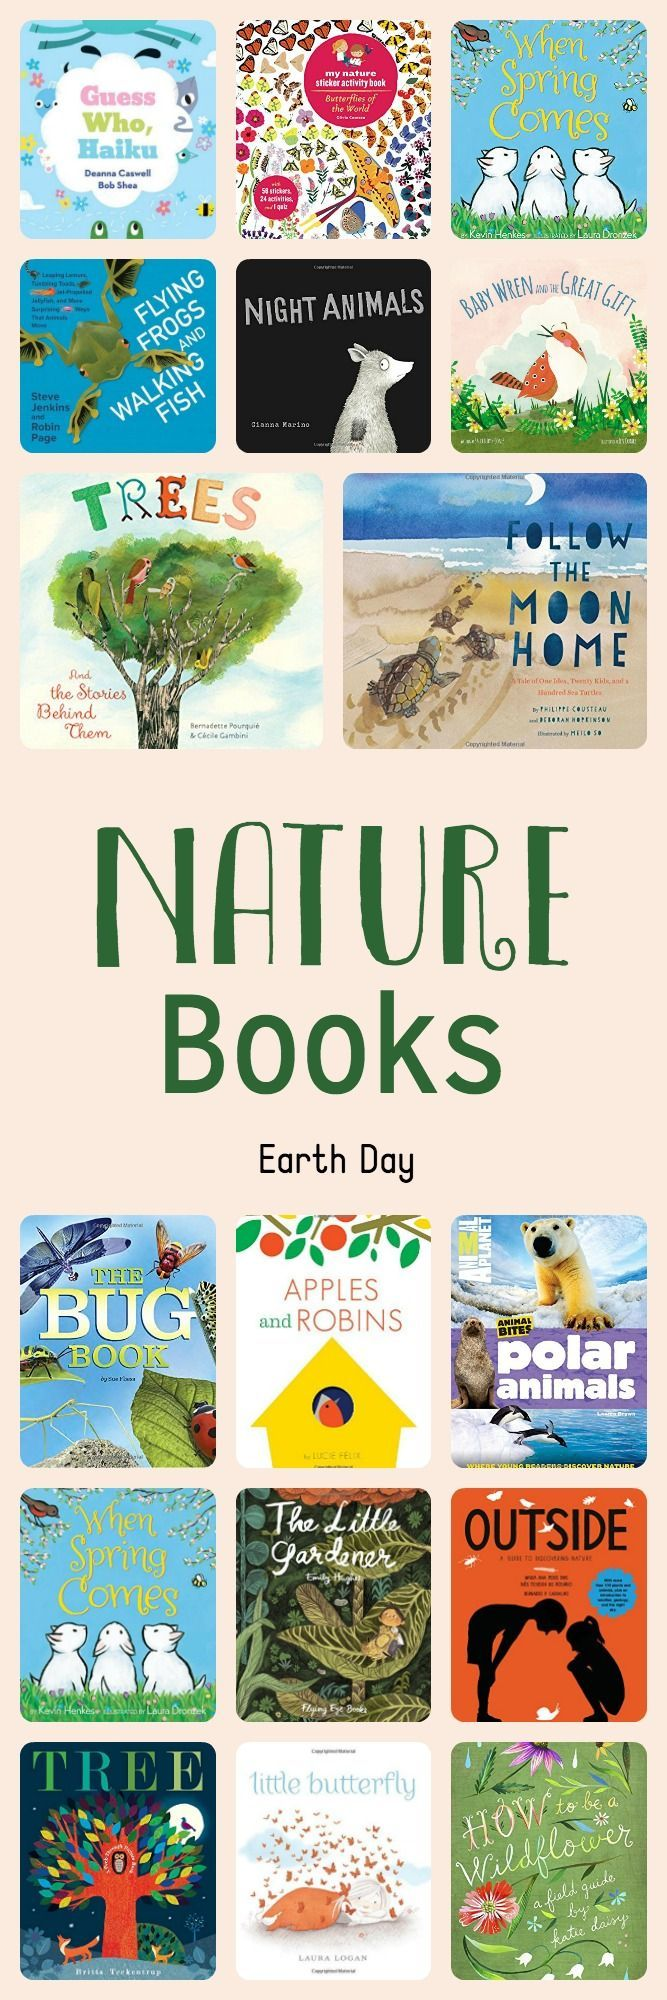 books about nature - Earth Day 2016